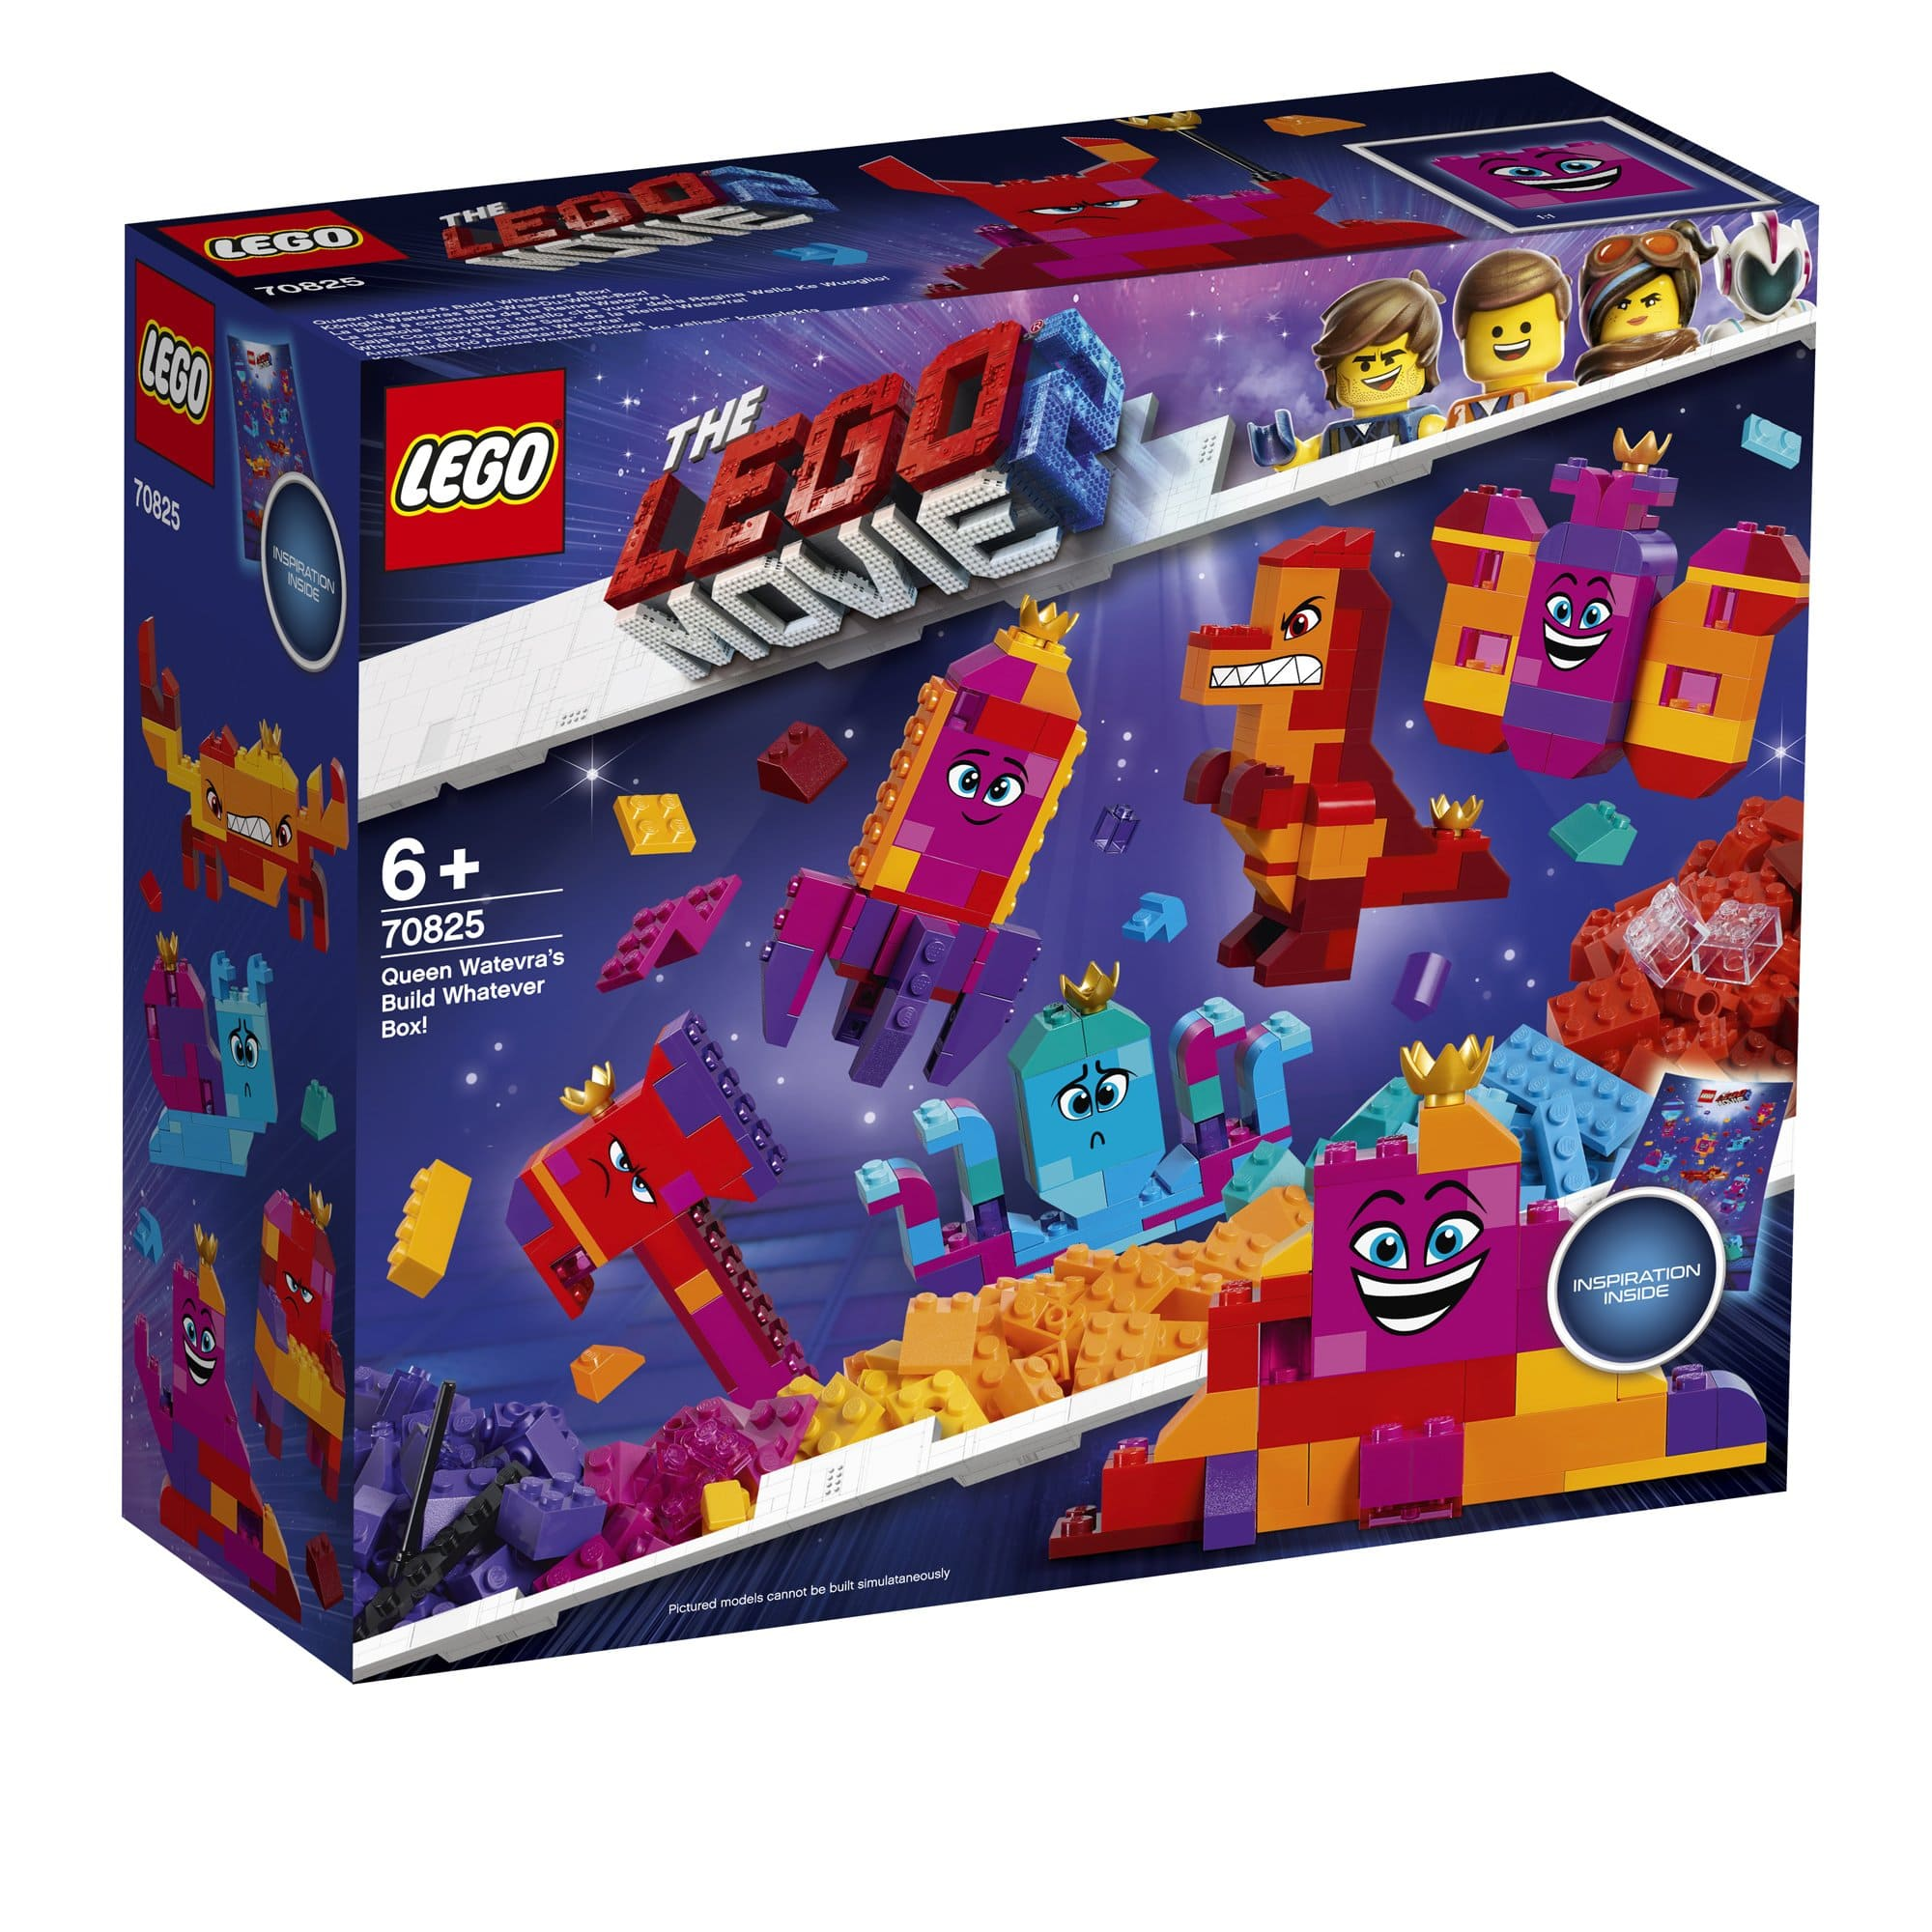 LEGO 樂高積木 LEGO Movie 樂高玩電影2系列 70825 Queen Watevra's Build Whatever Box!